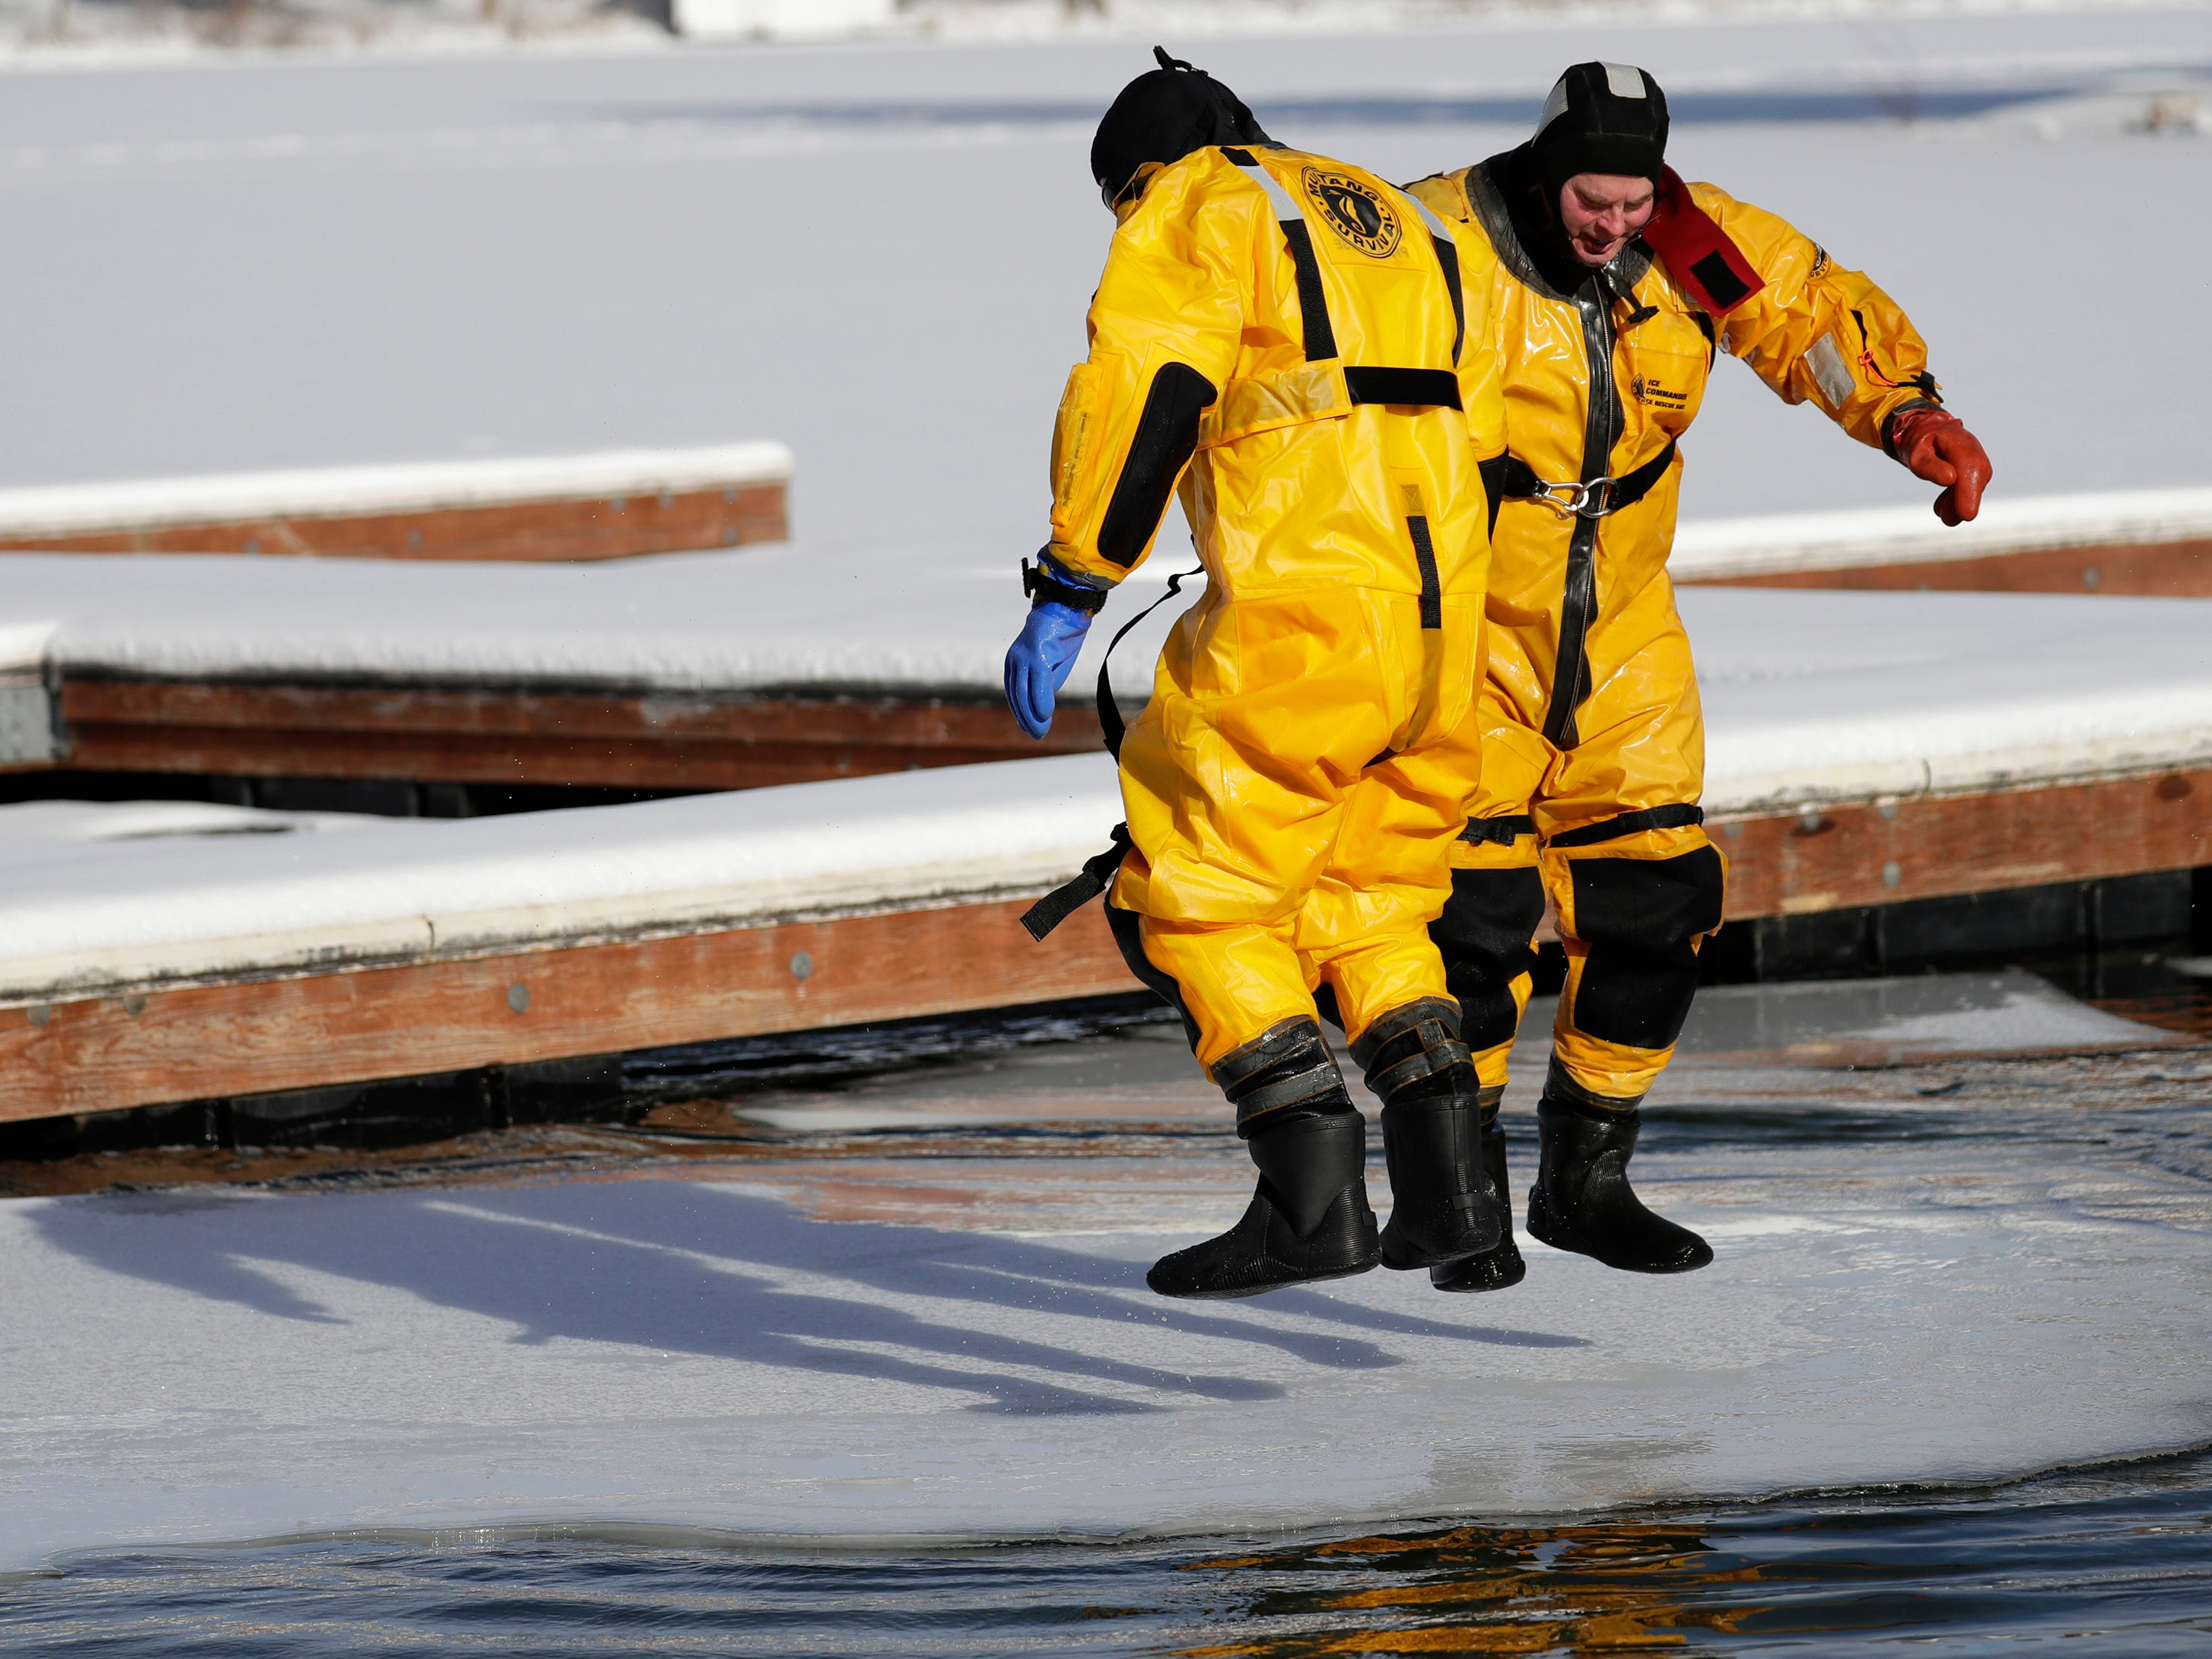 Waupaca firefighter Scott Obremski, left, and Lt. Pete Jungers jump up and down trying to break off the edge of the ice during the Polar Bear Plunge at Becker Marine on Lime Kiln Lake in Waupaca, Wis.